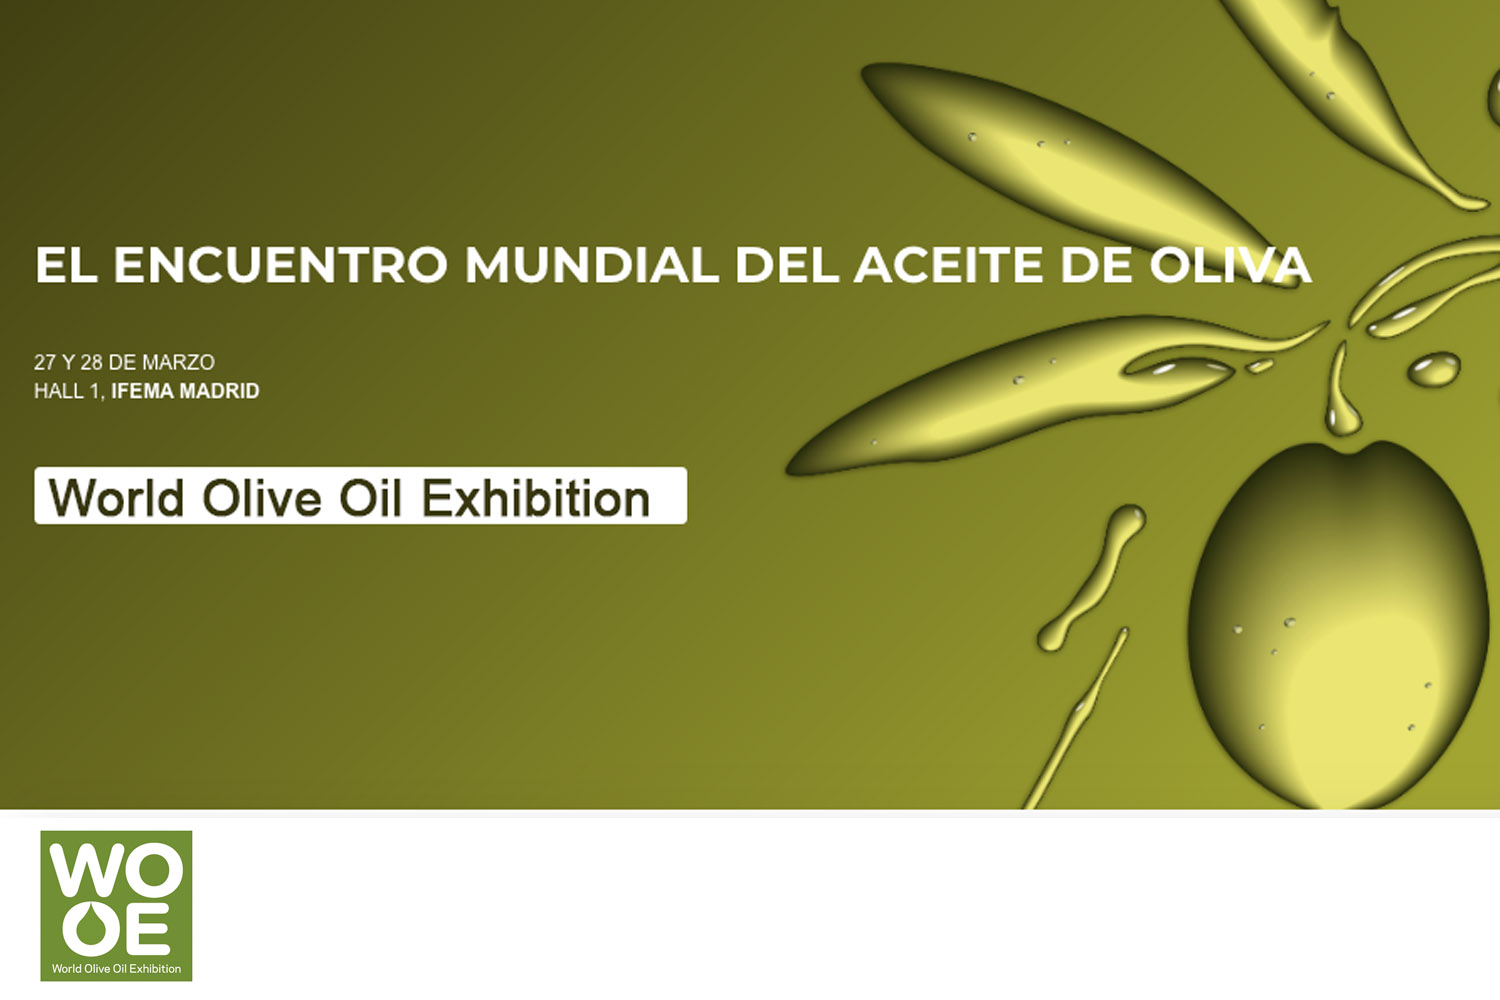 World Olive Oil Exhibition